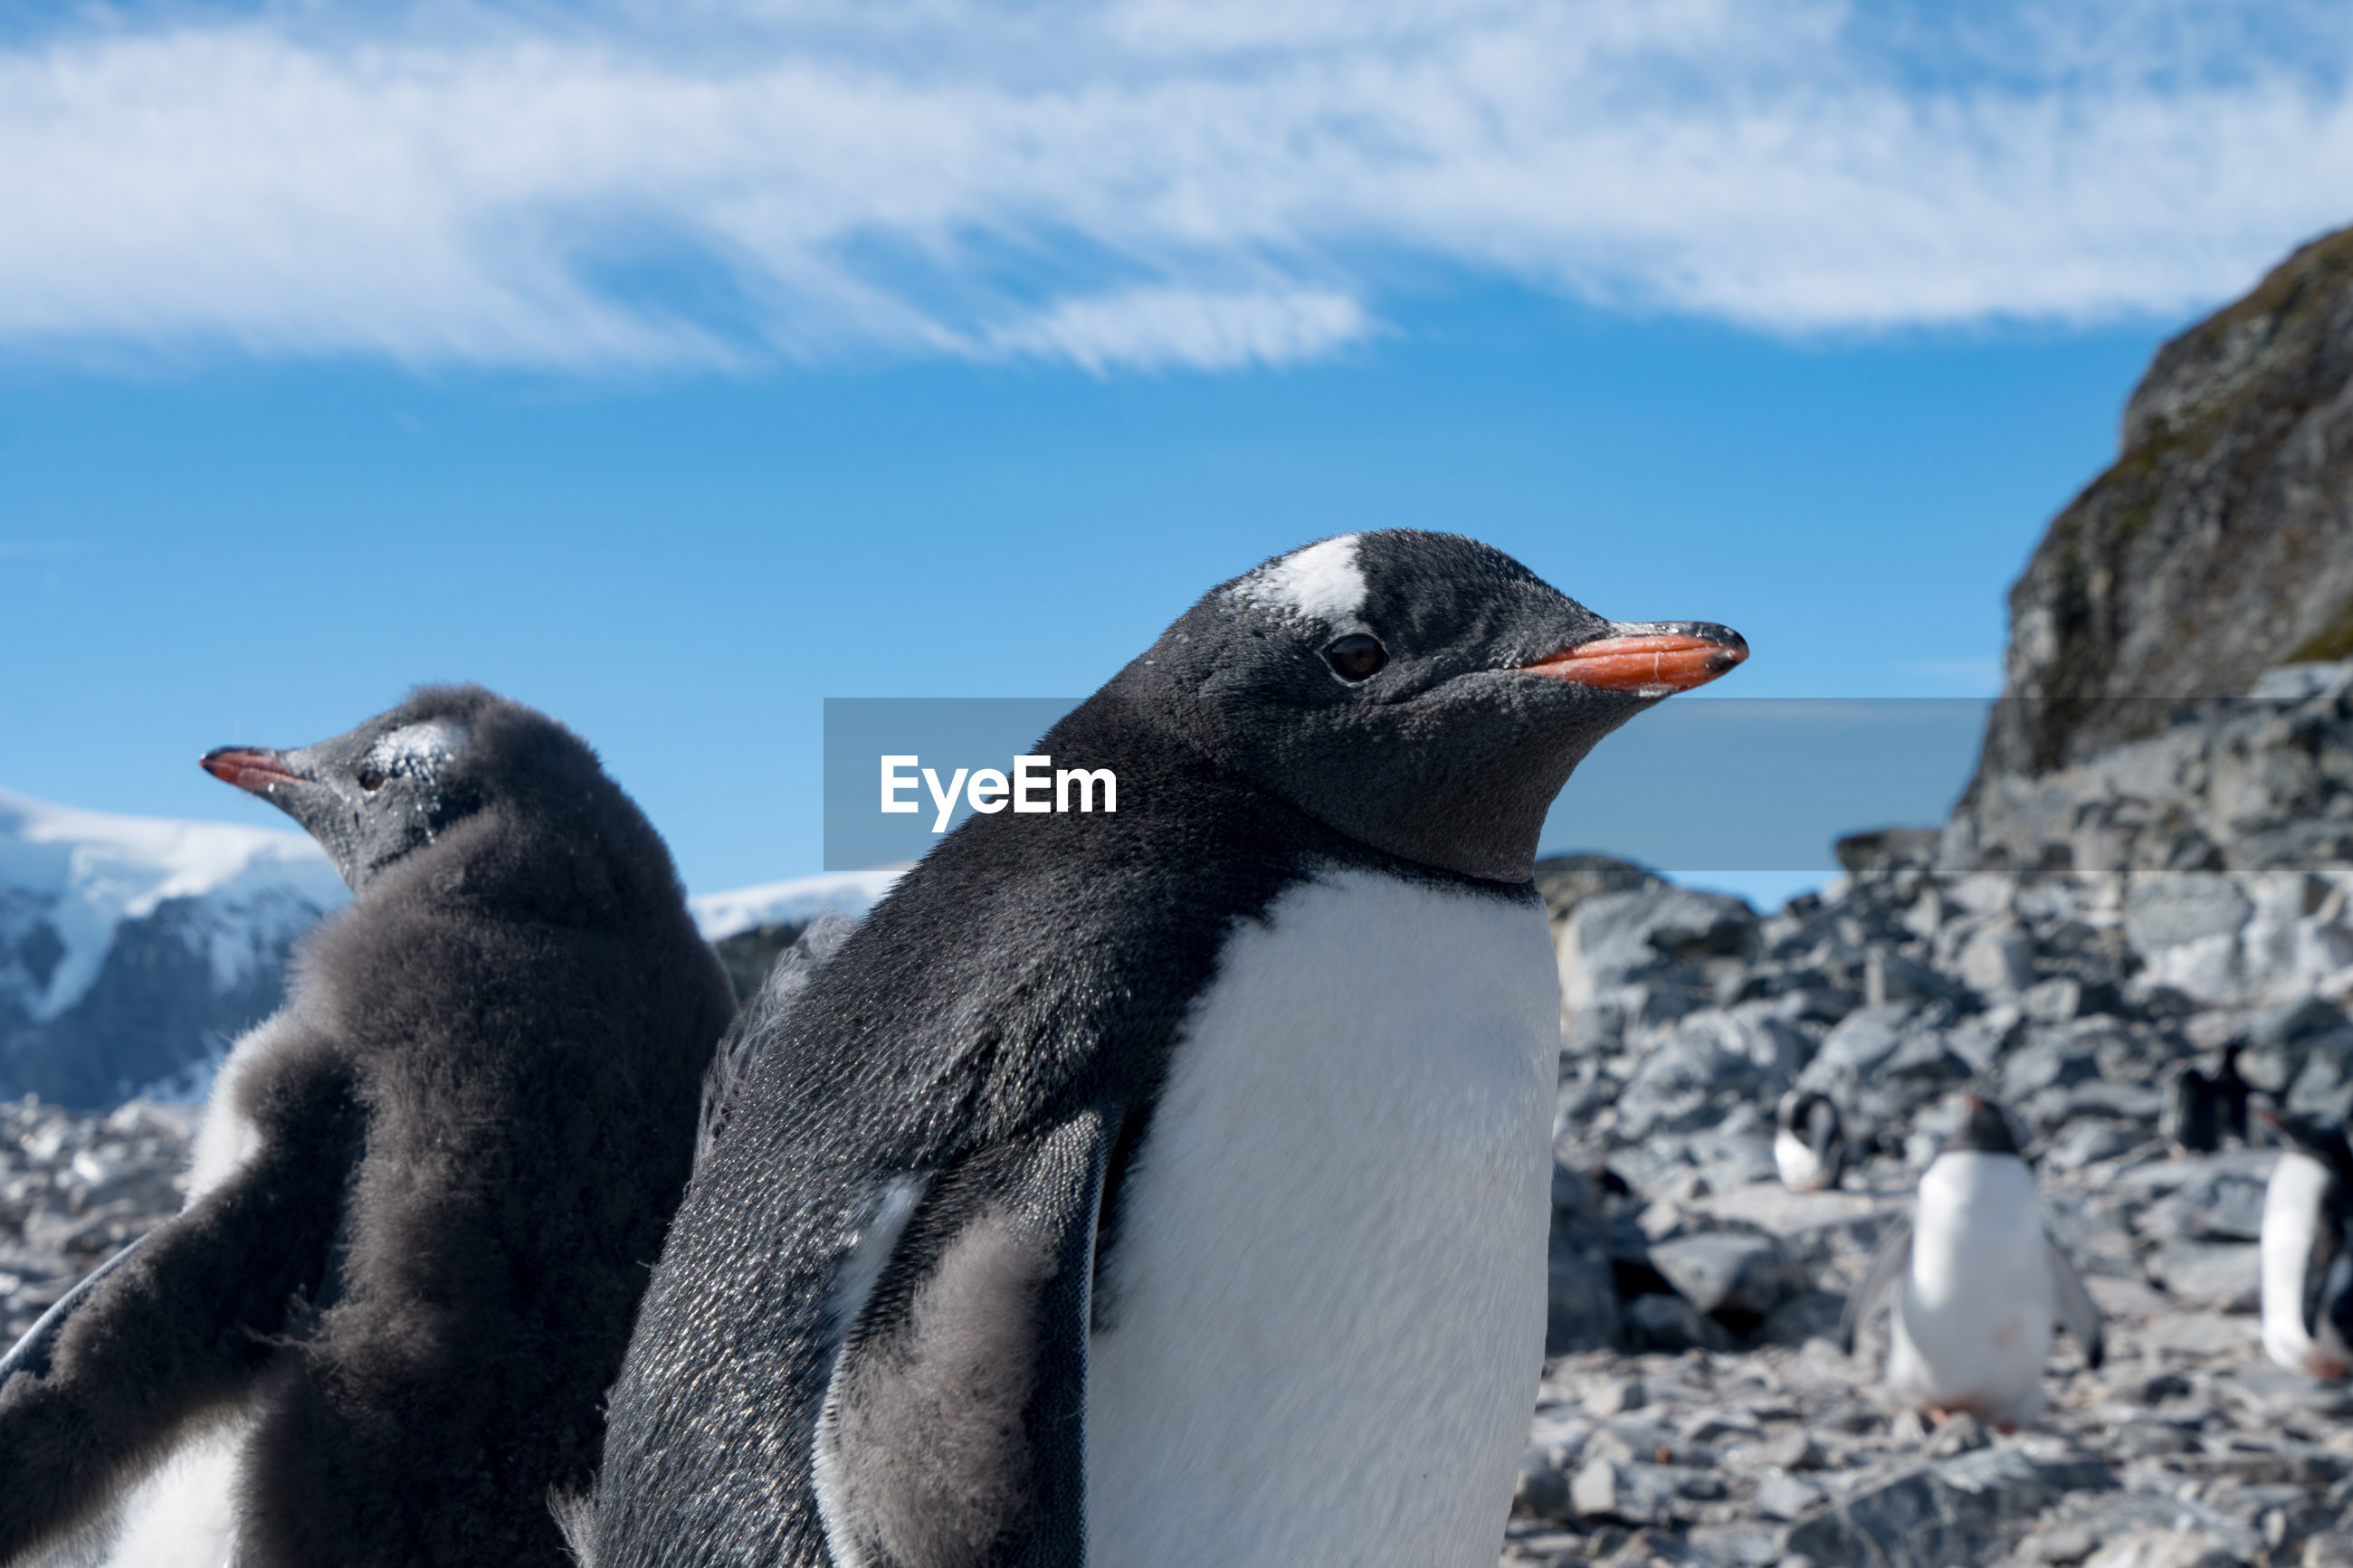 Close-up of penguins on rock against sky